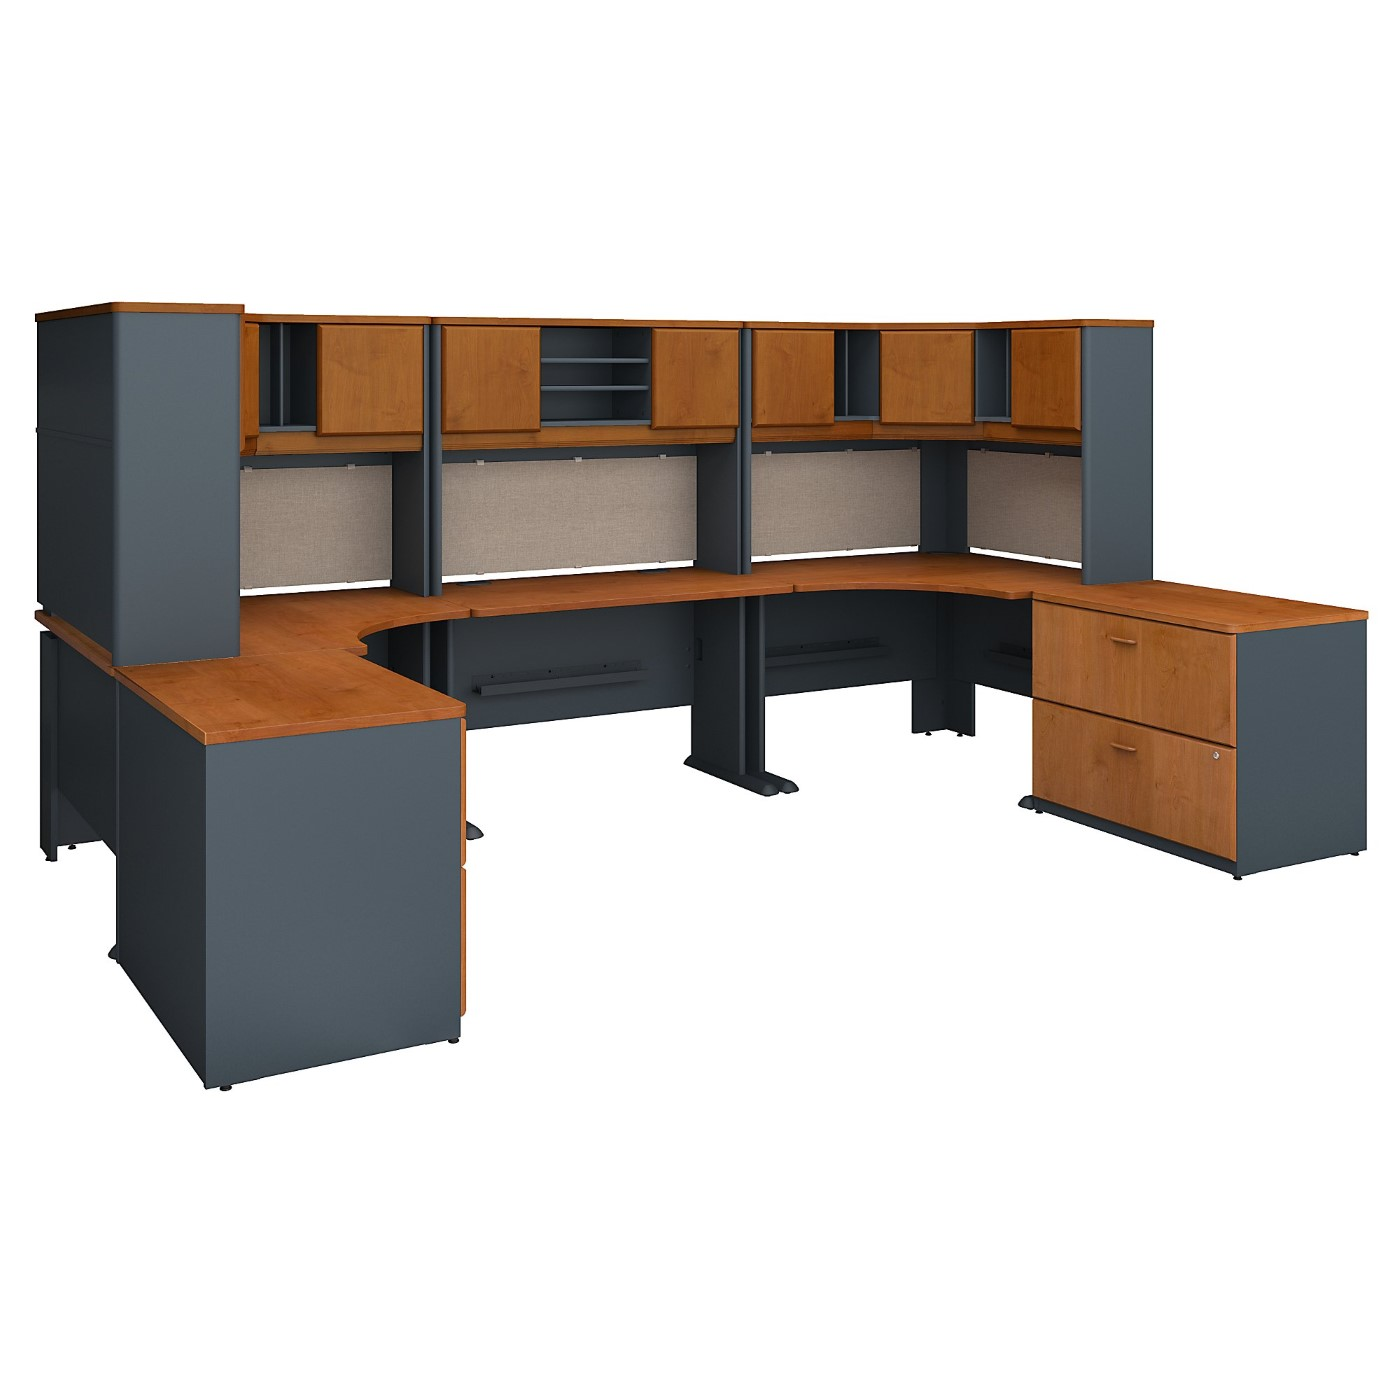 BUSH BUSINESS FURNITURE SERIES A 2 PERSON WORKSTATION WITH CORNER DESKS, HUTCHES AND STORAGE. FREE SHIPPING